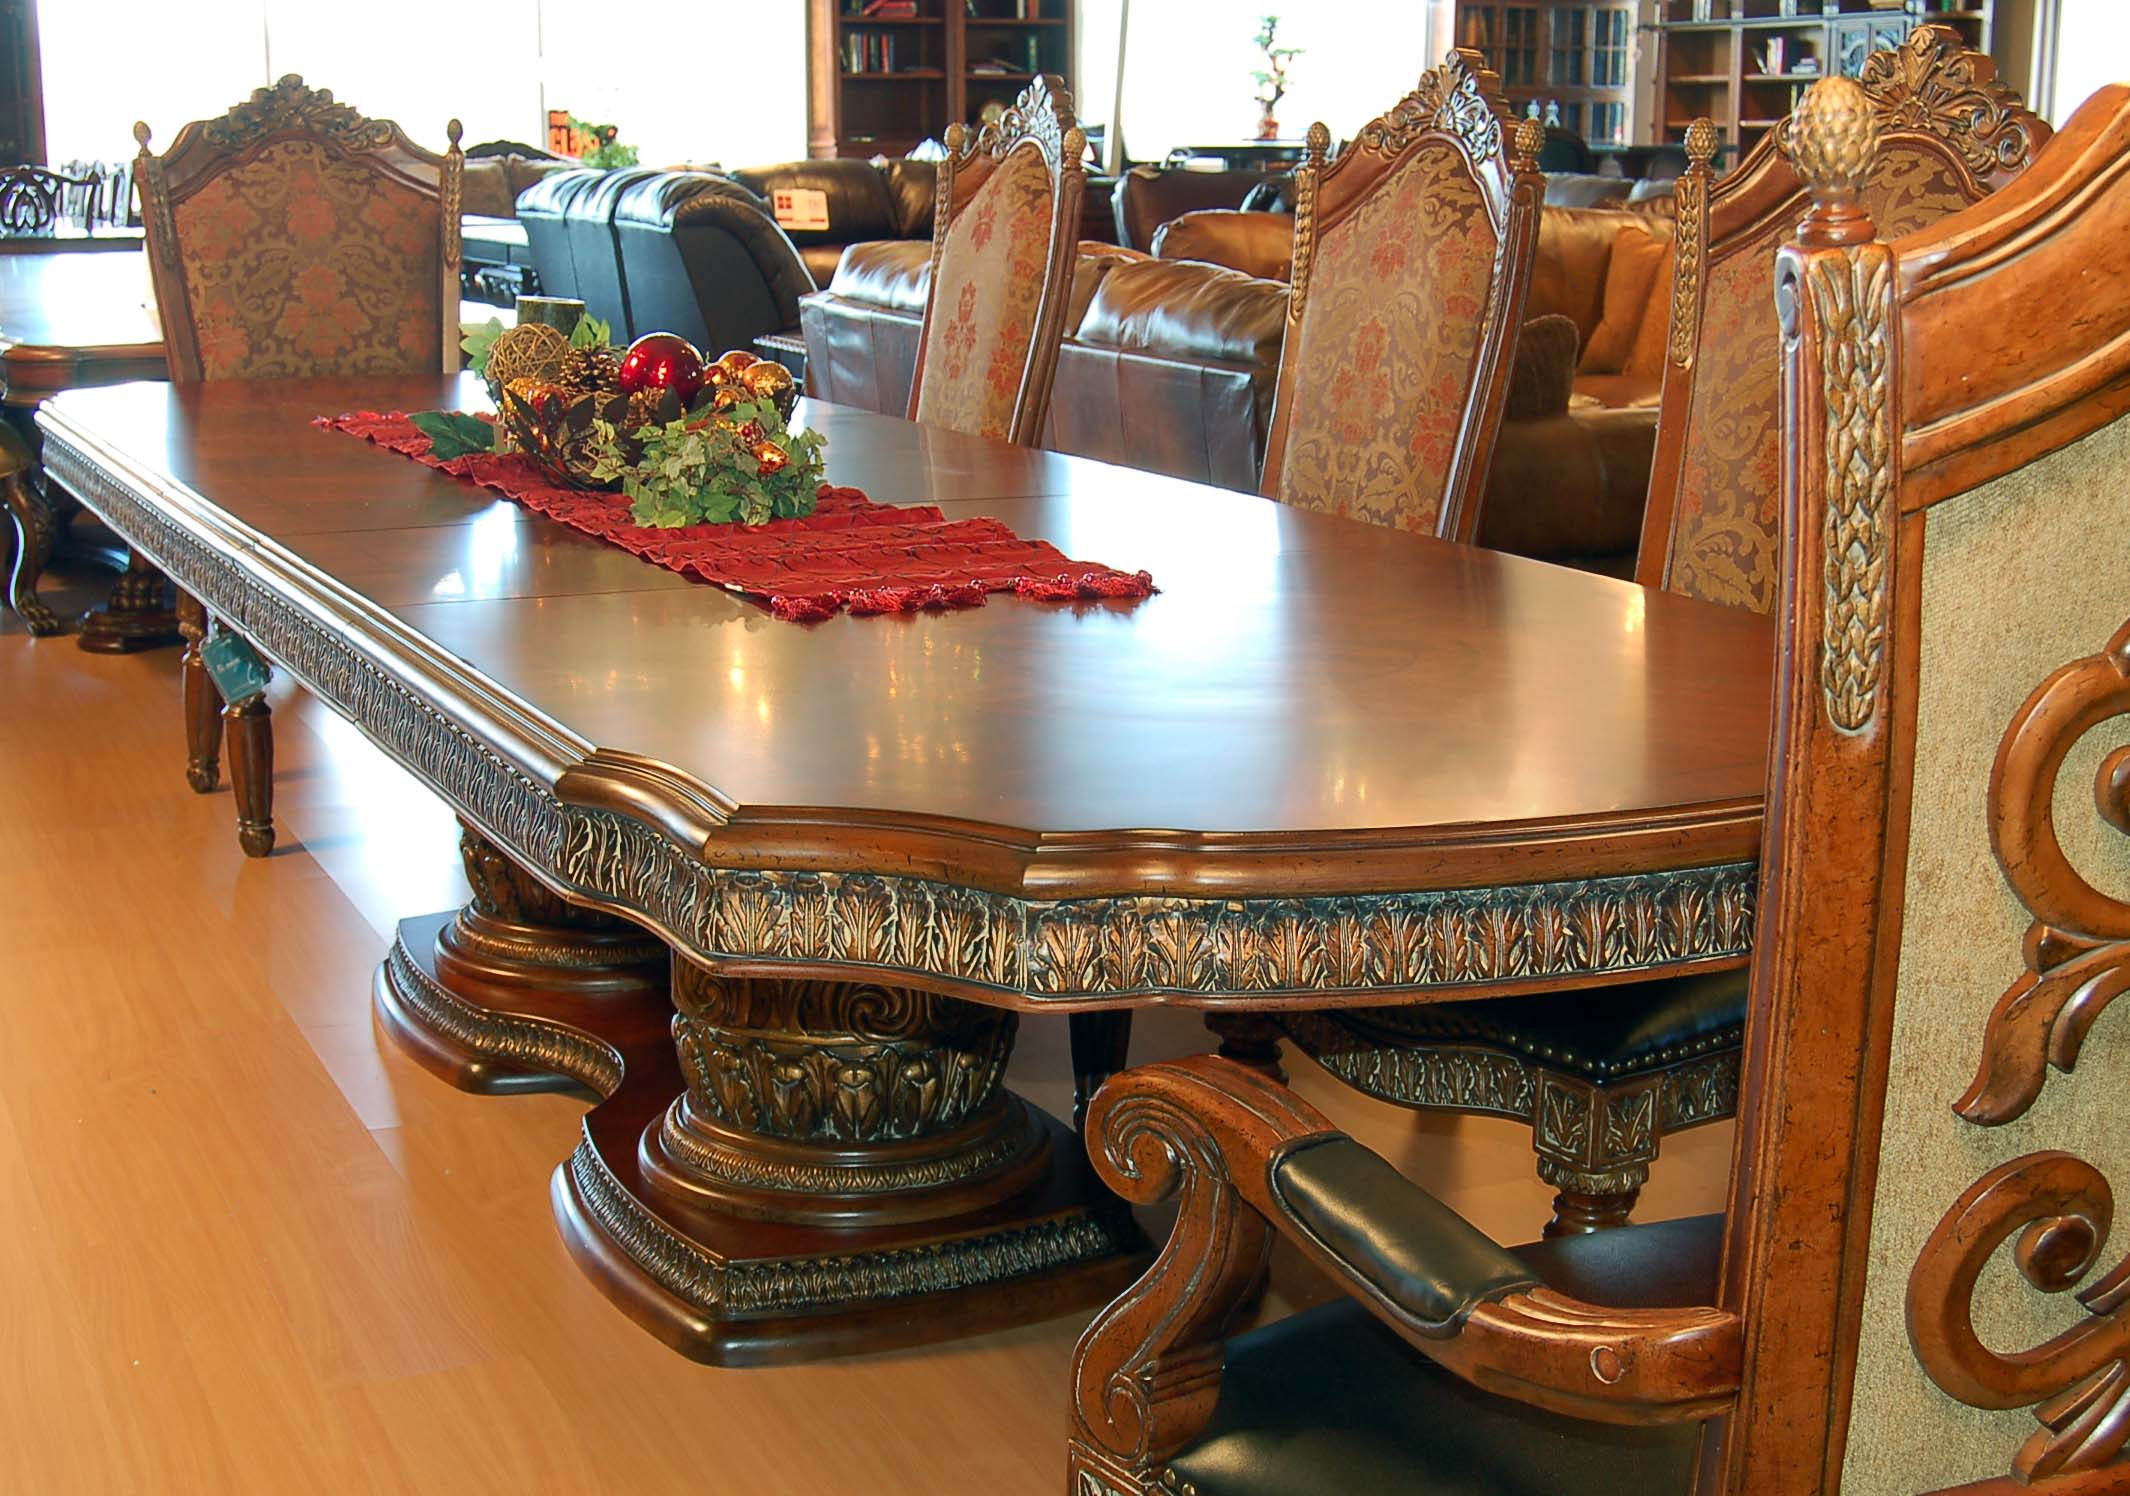 11 Piece Ornate Carved Dining Table Chair Sideboard And